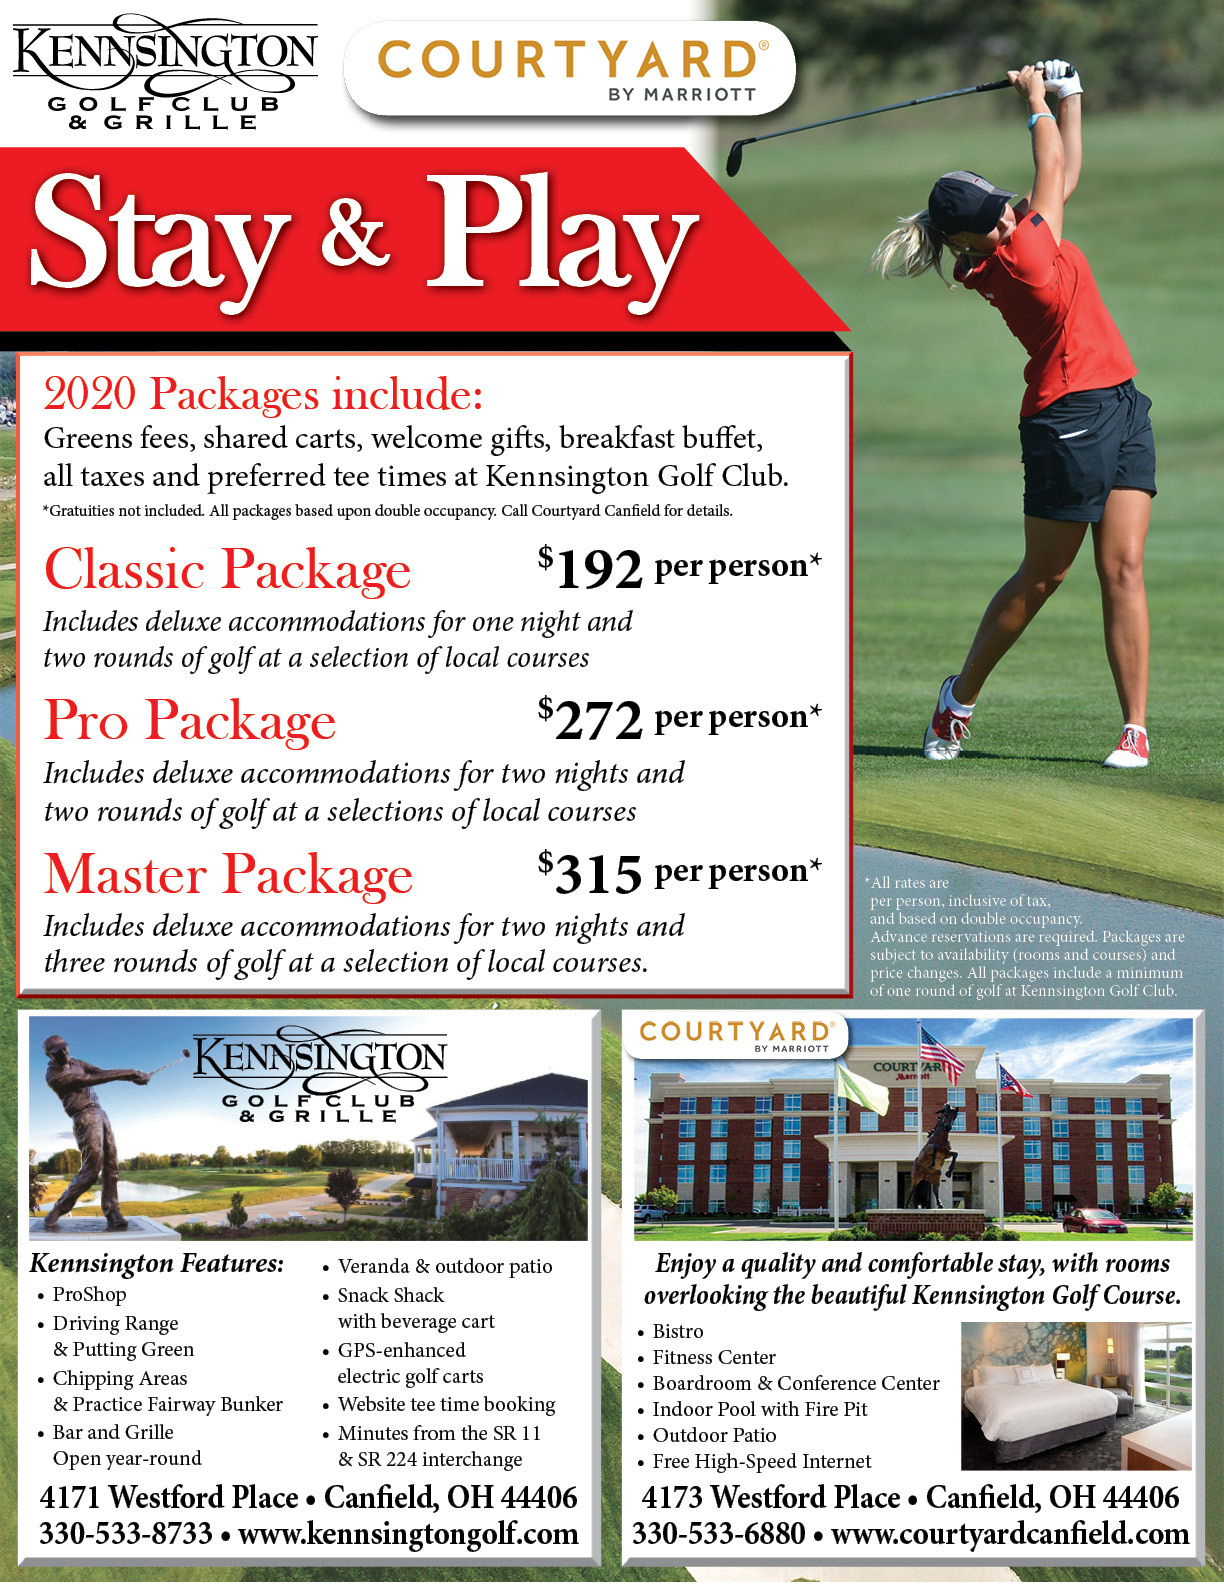 2020 Stay and Play Packages